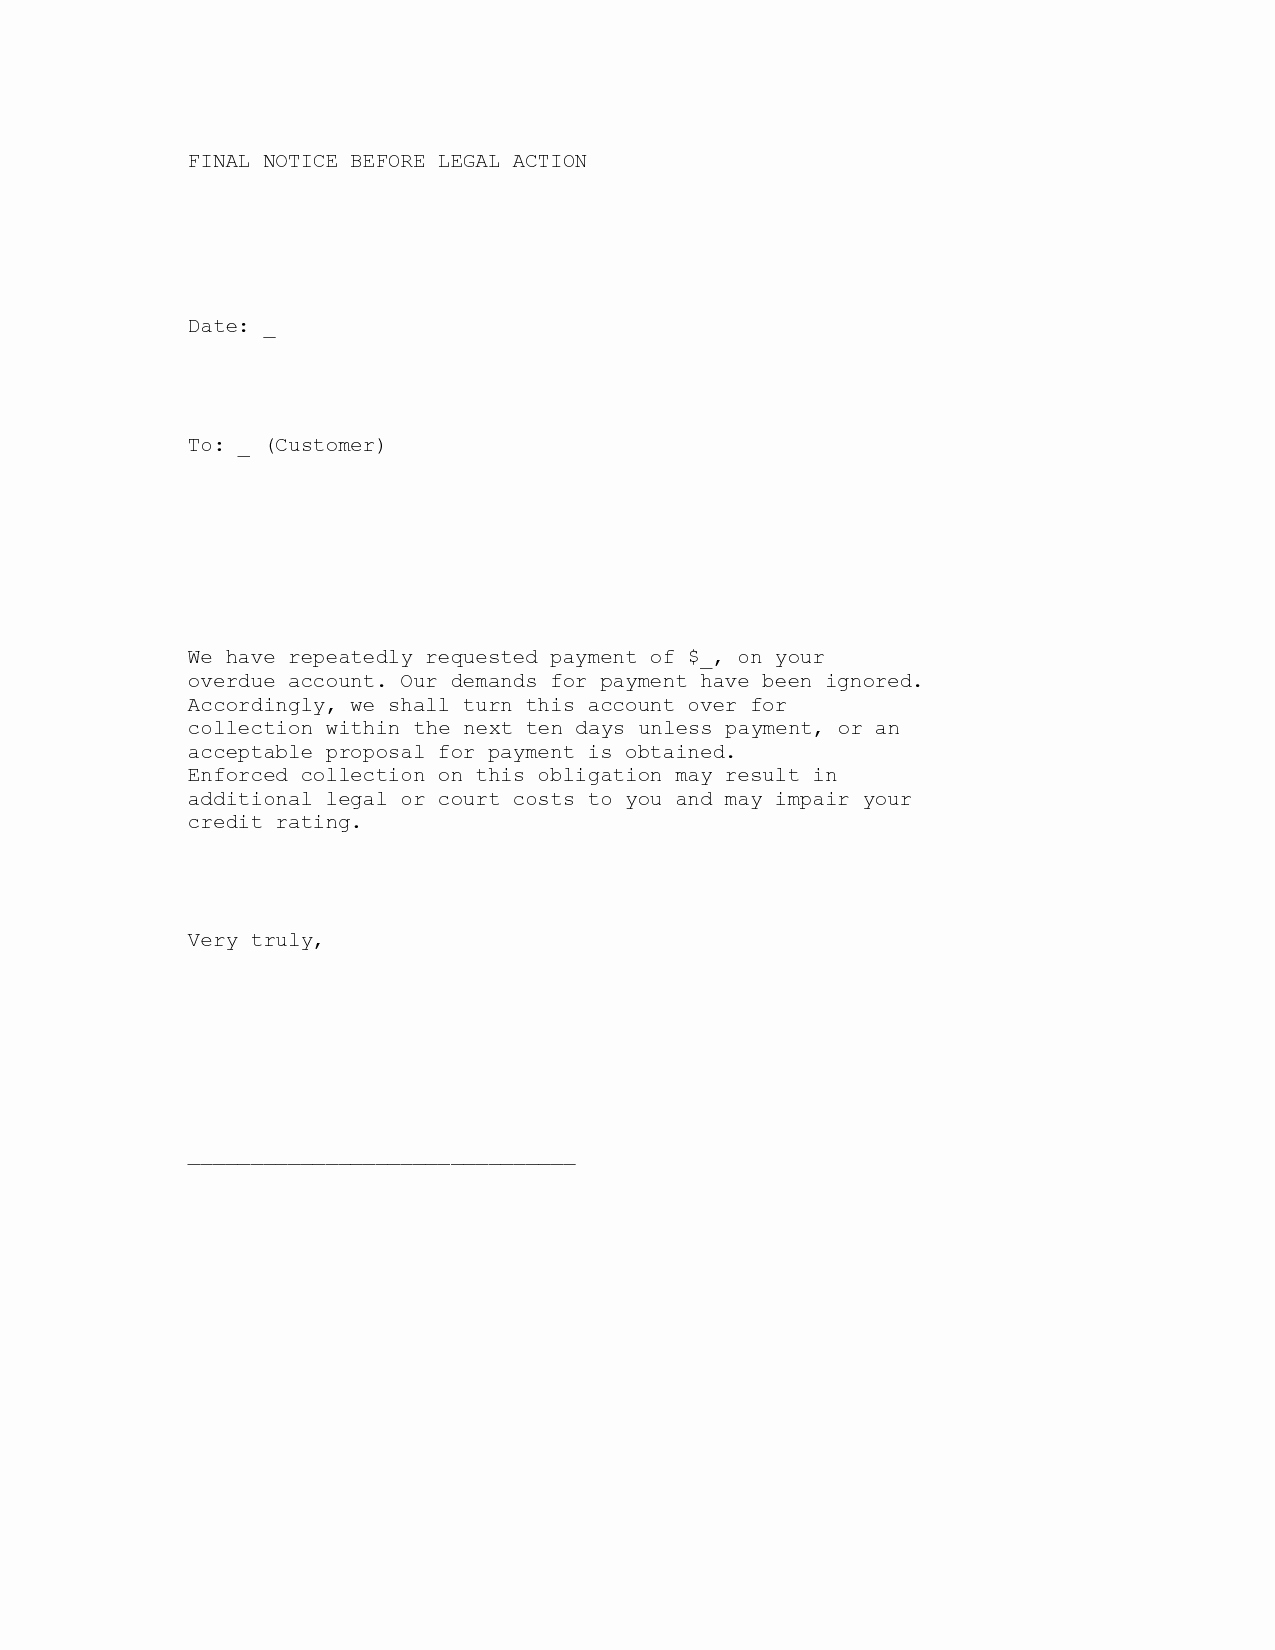 Collection Letter Template Final Notice Lovely Best S Of Collection Letter before Legal Action